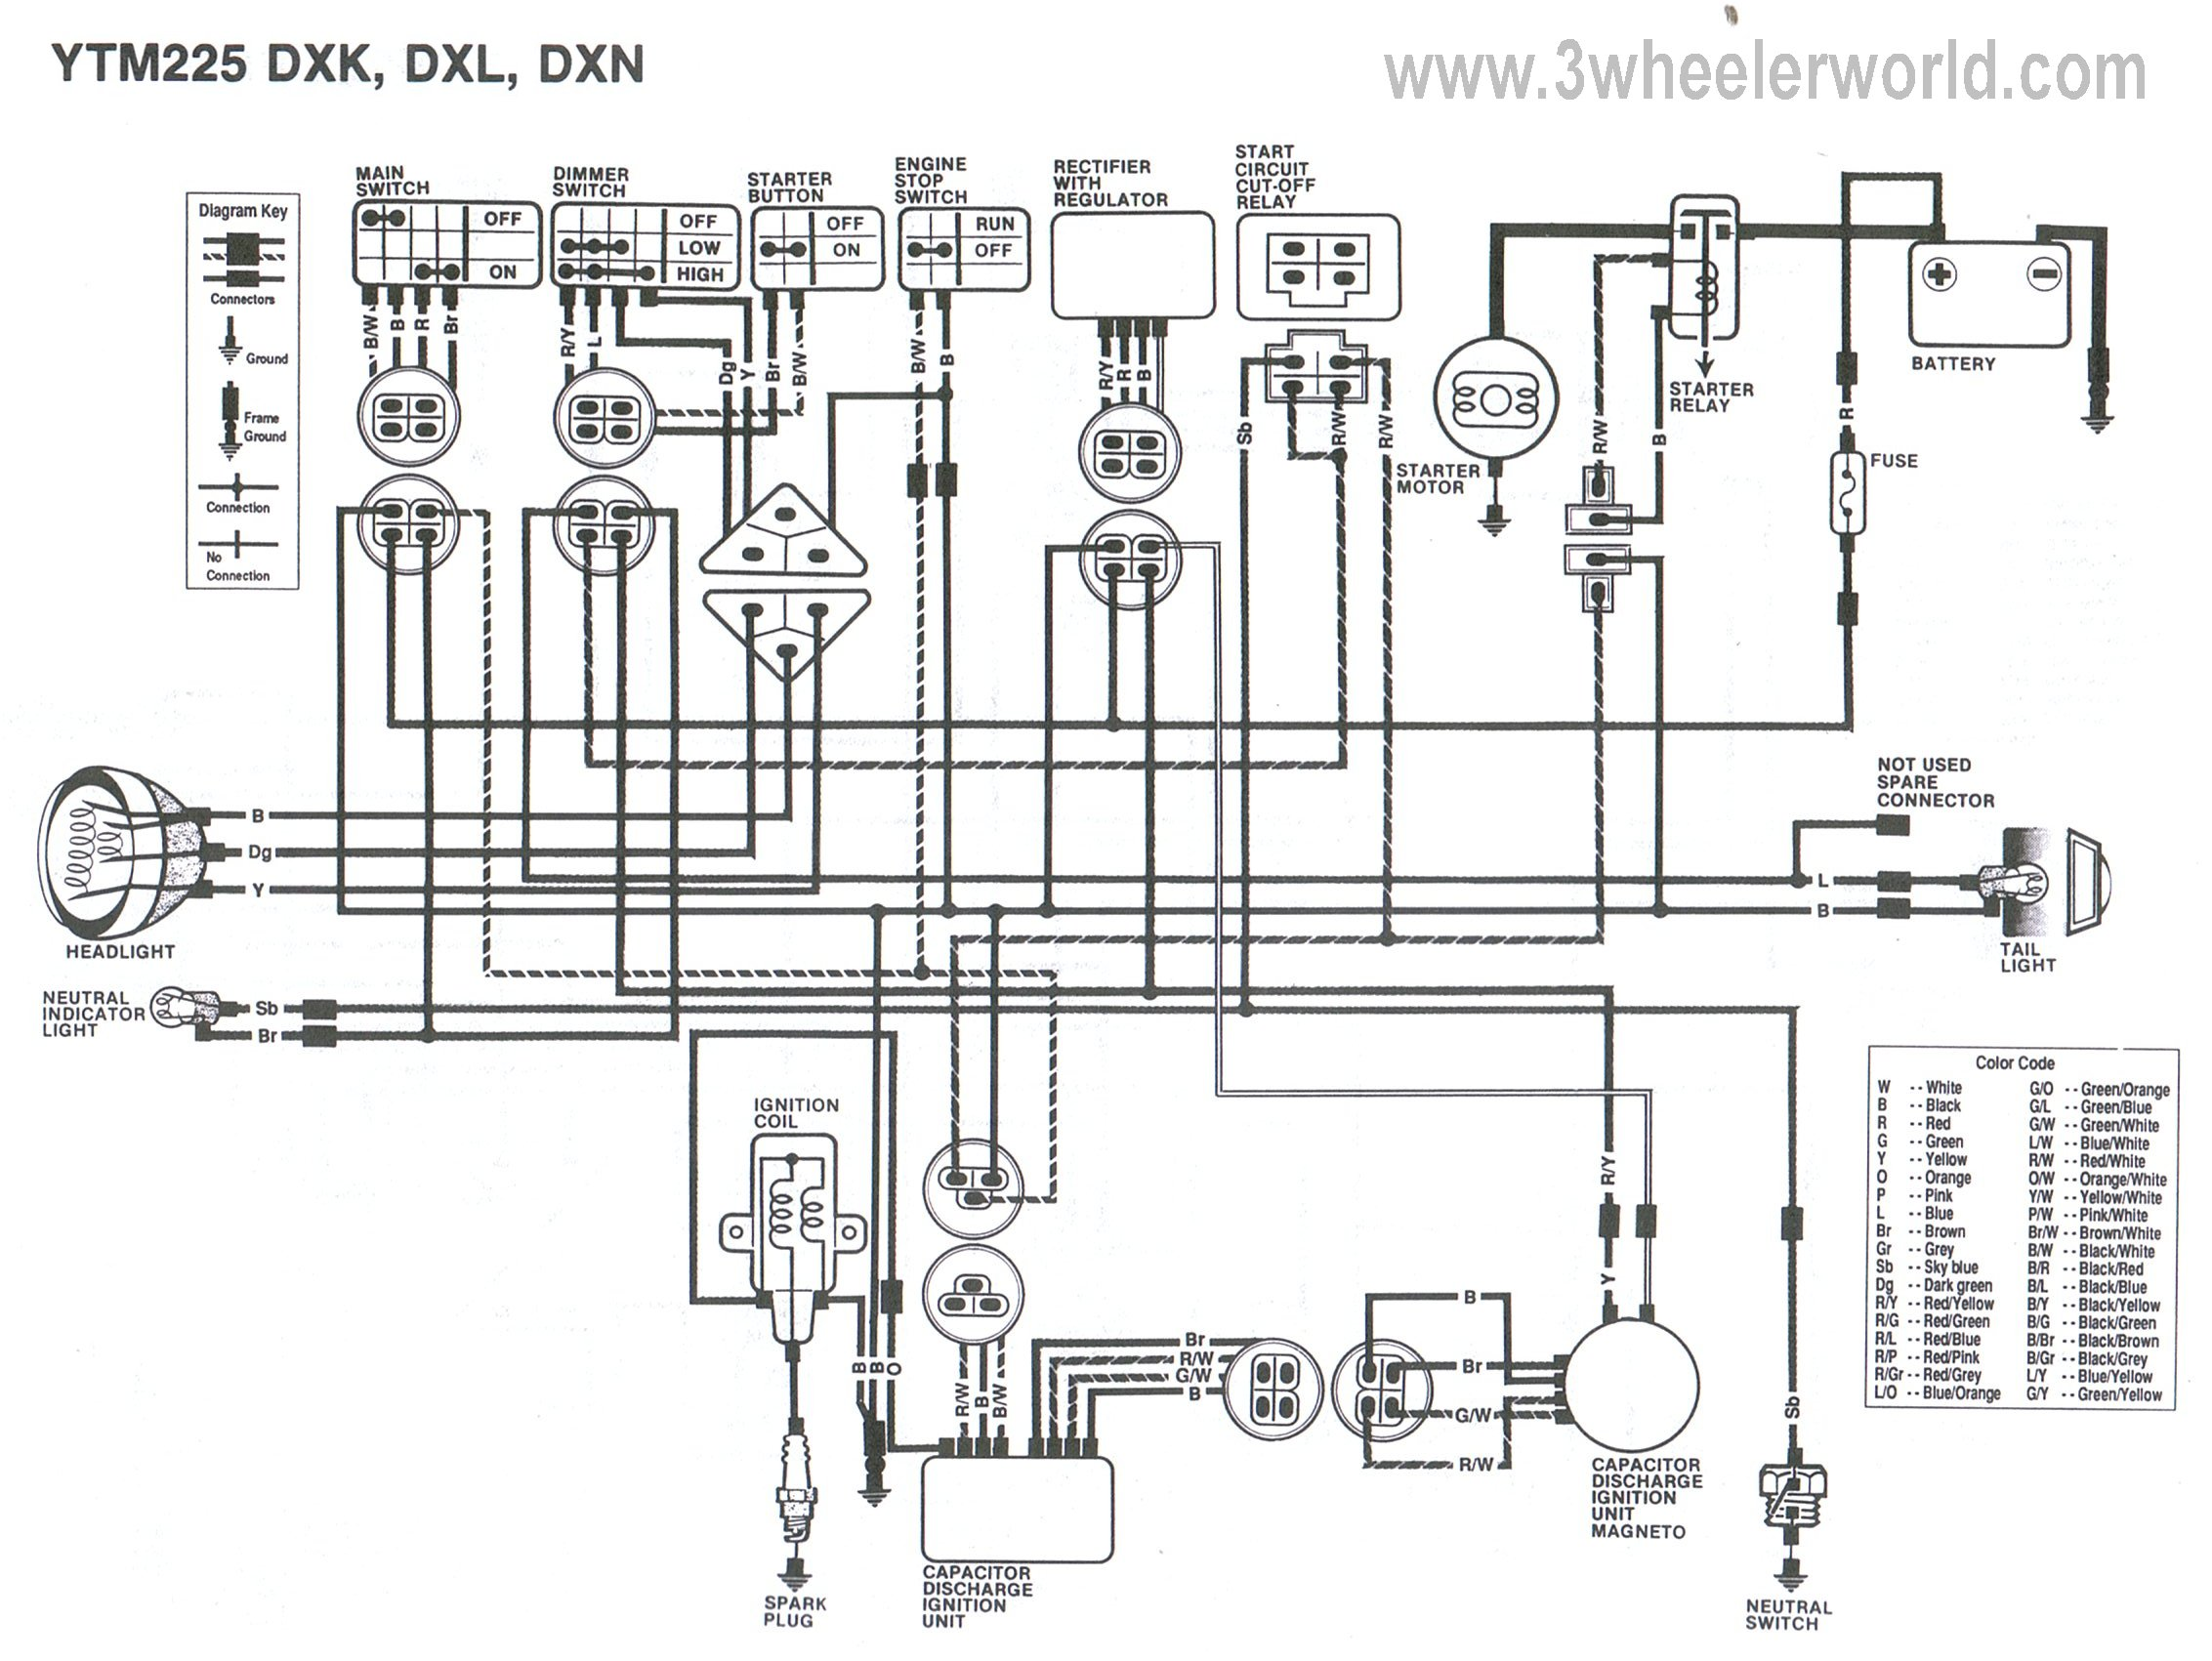 YTM225DXKDXLDXN 3 wheeler world tech help yamaha wiring diagrams yamaha moto 4 350 wiring diagram at readyjetset.co